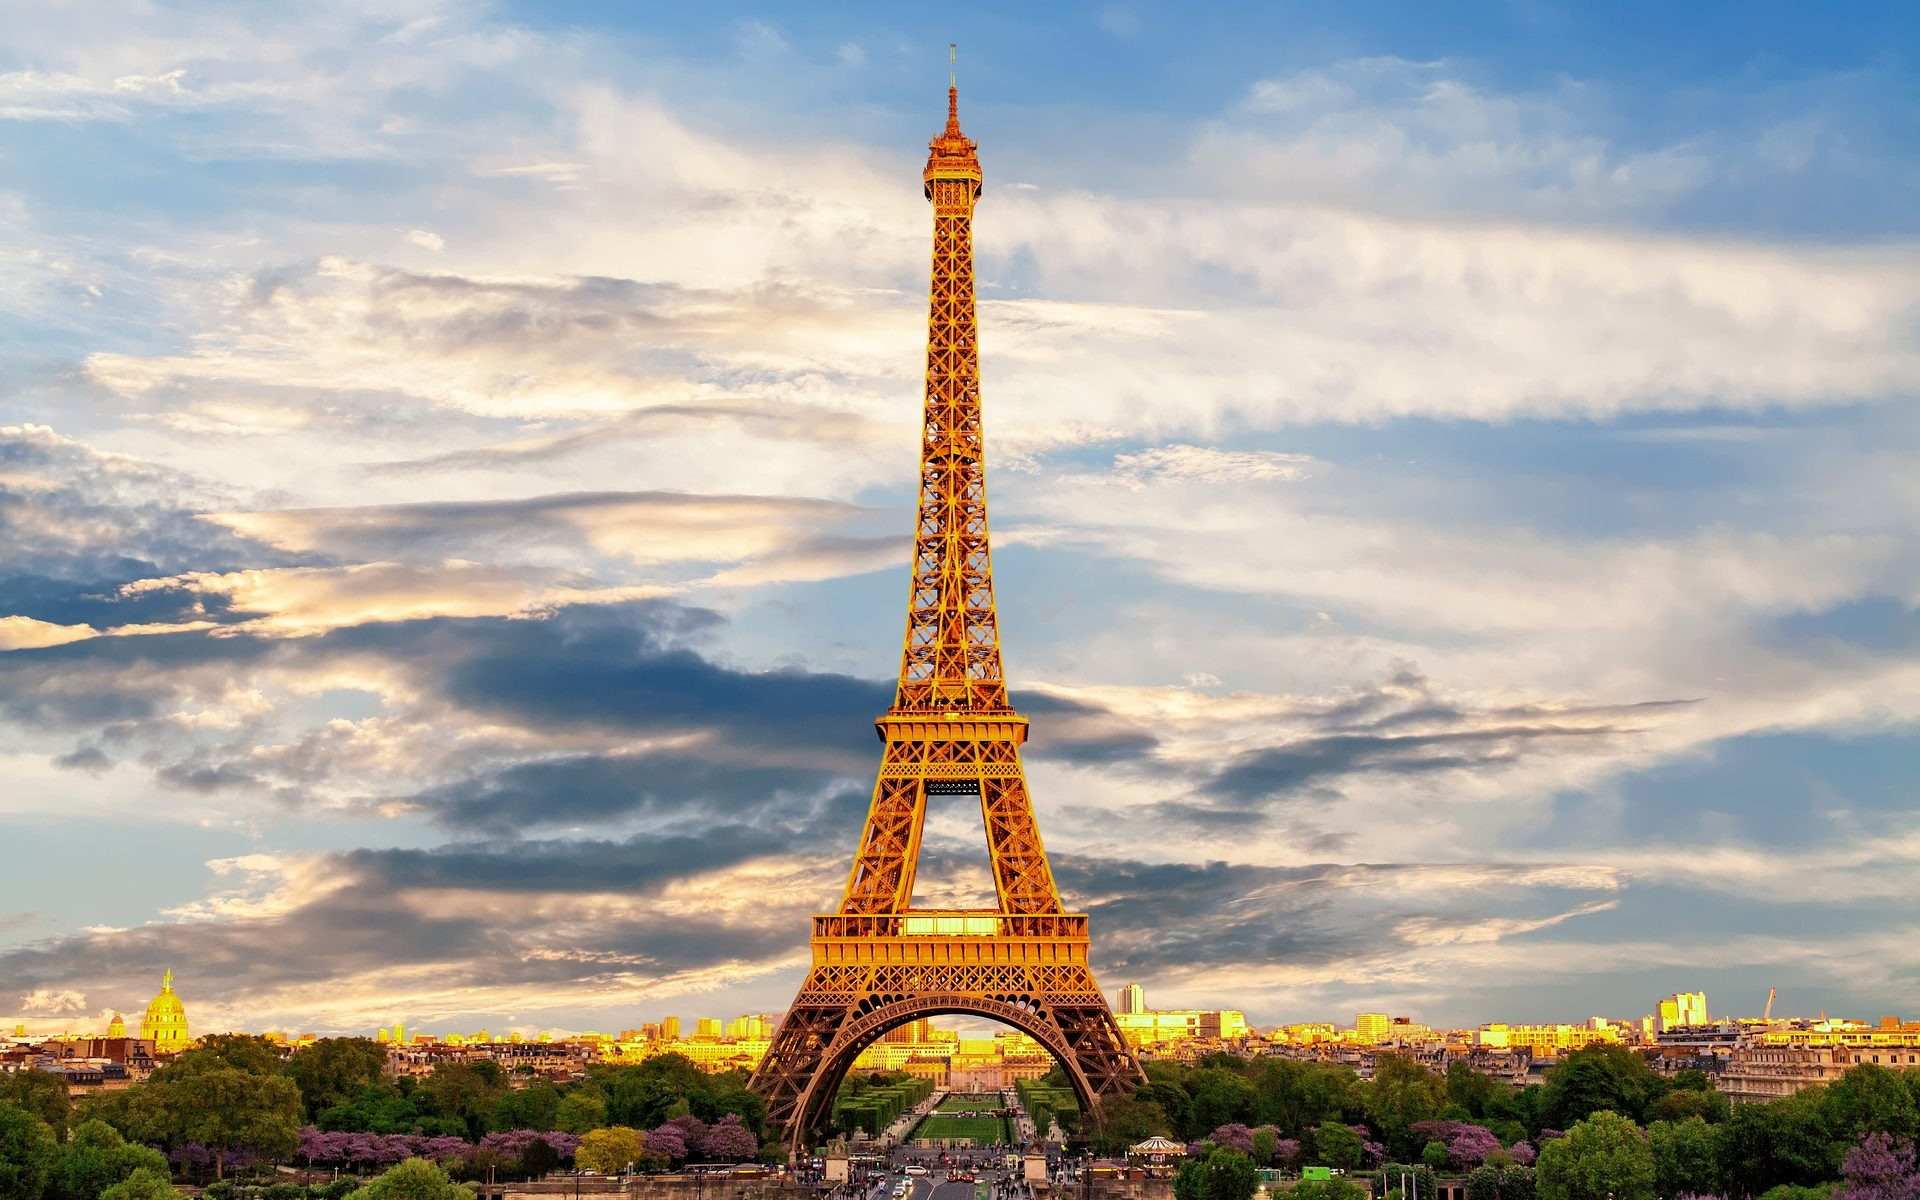 Eiffel tower paris desktop wallpapers computer - Paris eiffel tower desktop wallpaper ...